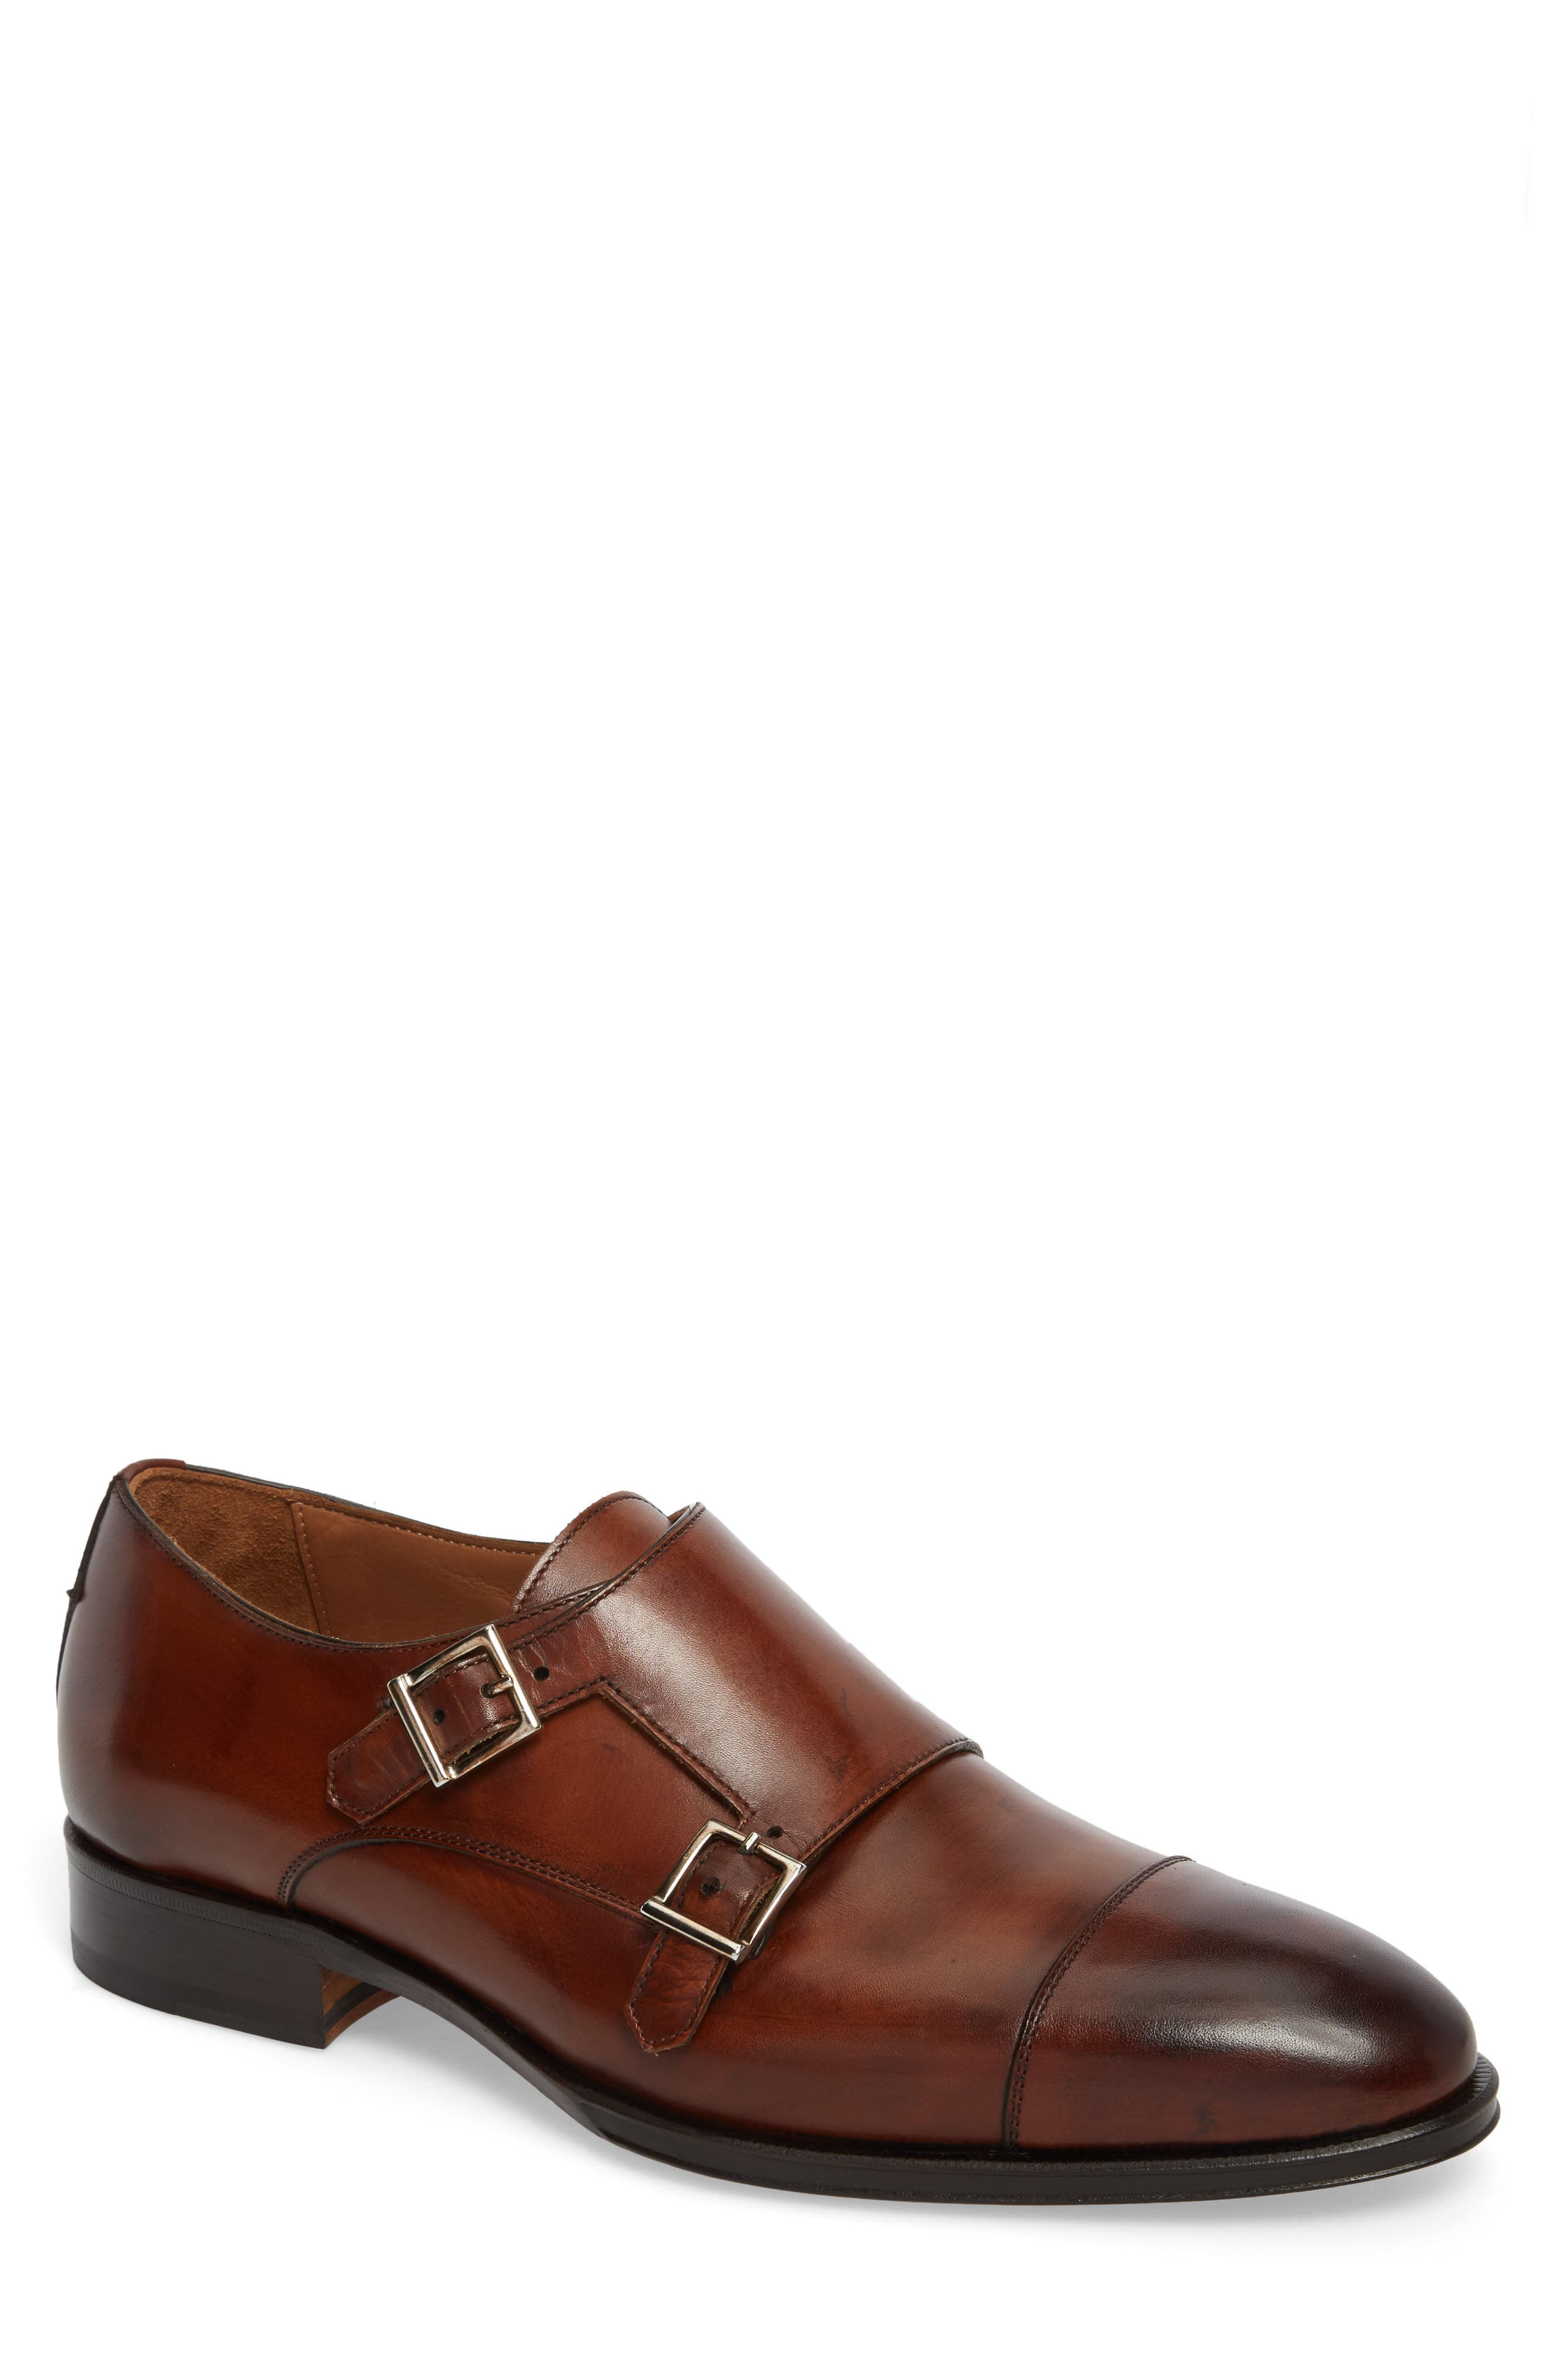 Gallo Bianco Double Monk Strap Shoe,                         Main,                         color, Marble Brown